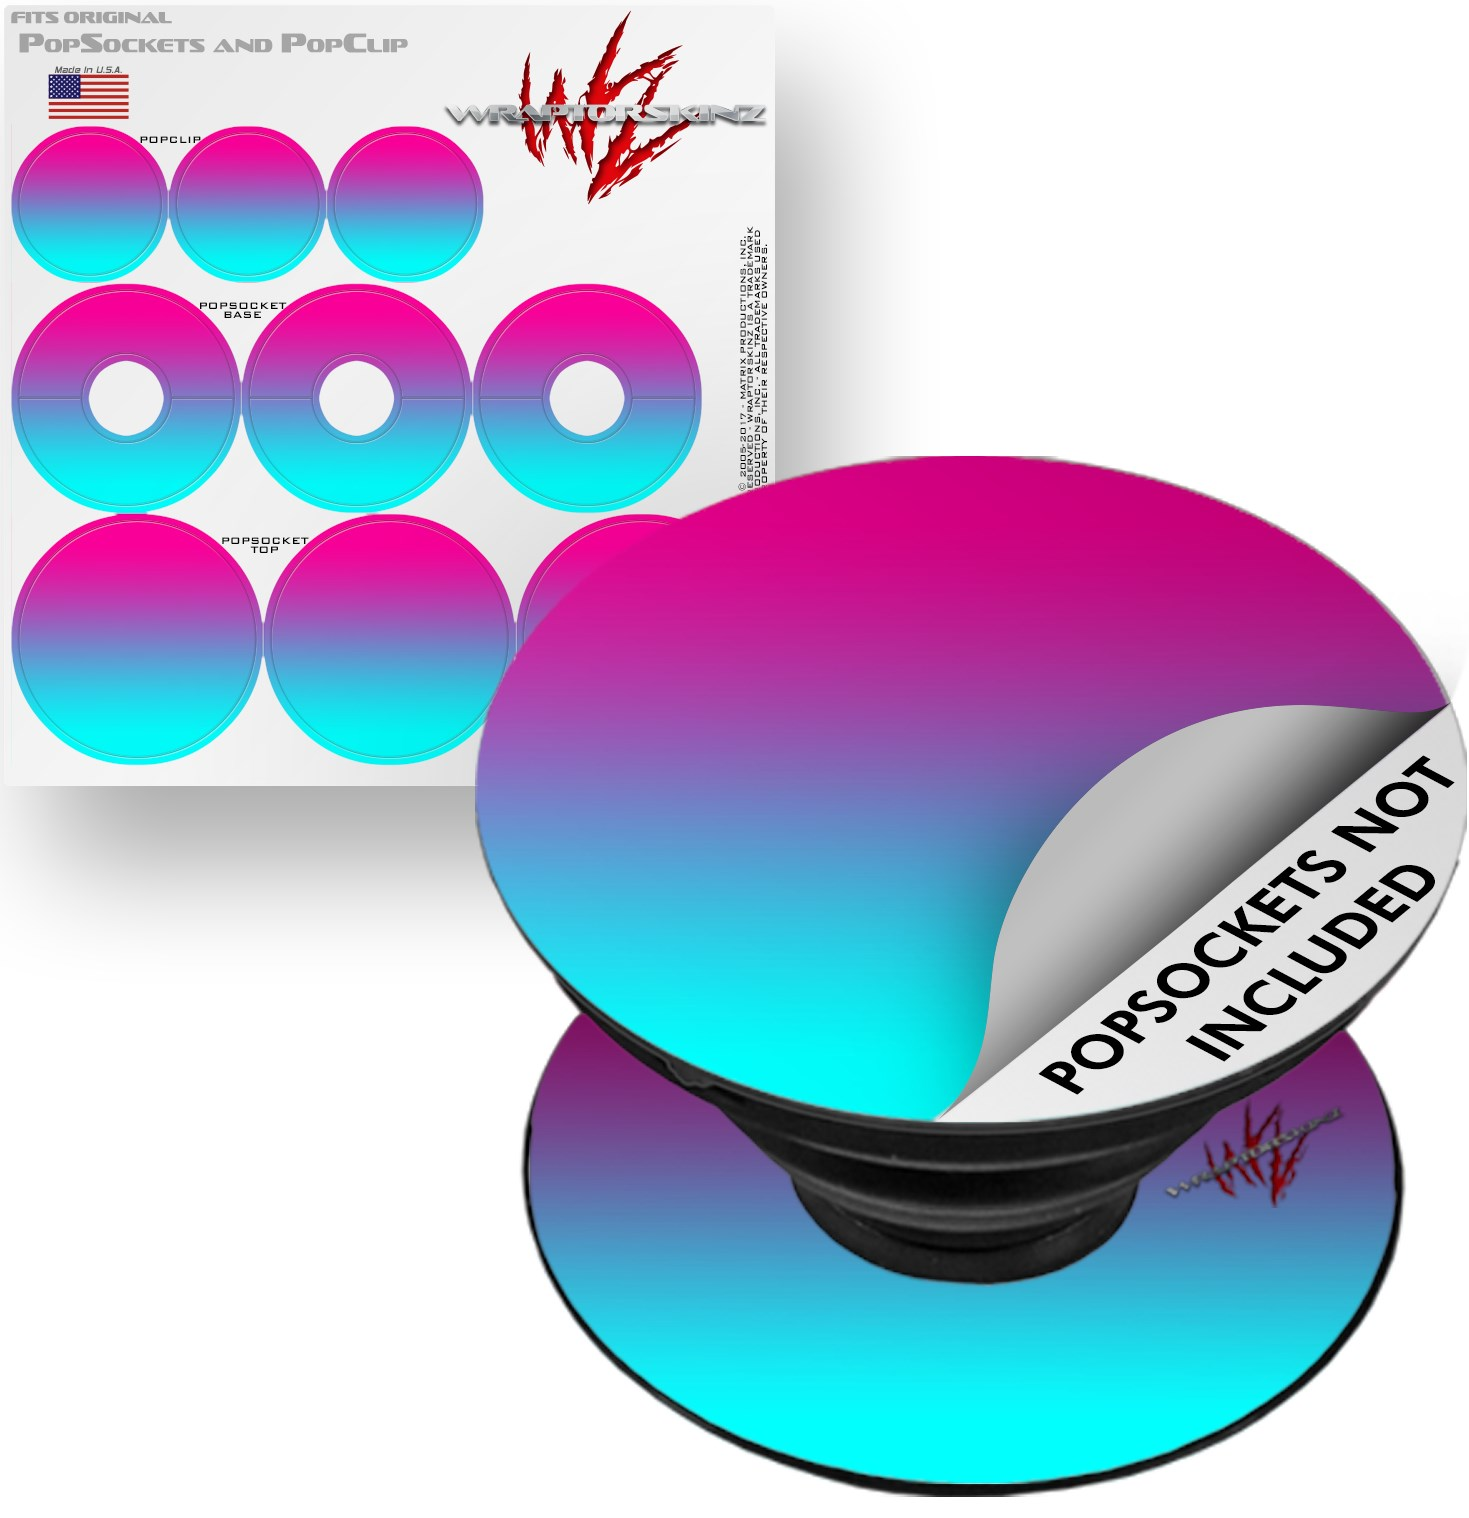 Decal Style Vinyl Skin Wrap 3 Pack for PopSockets Smooth Fades Neon Teal Hot Pink (POPSOCKET NOT INCLUDED) by WraptorSkinz